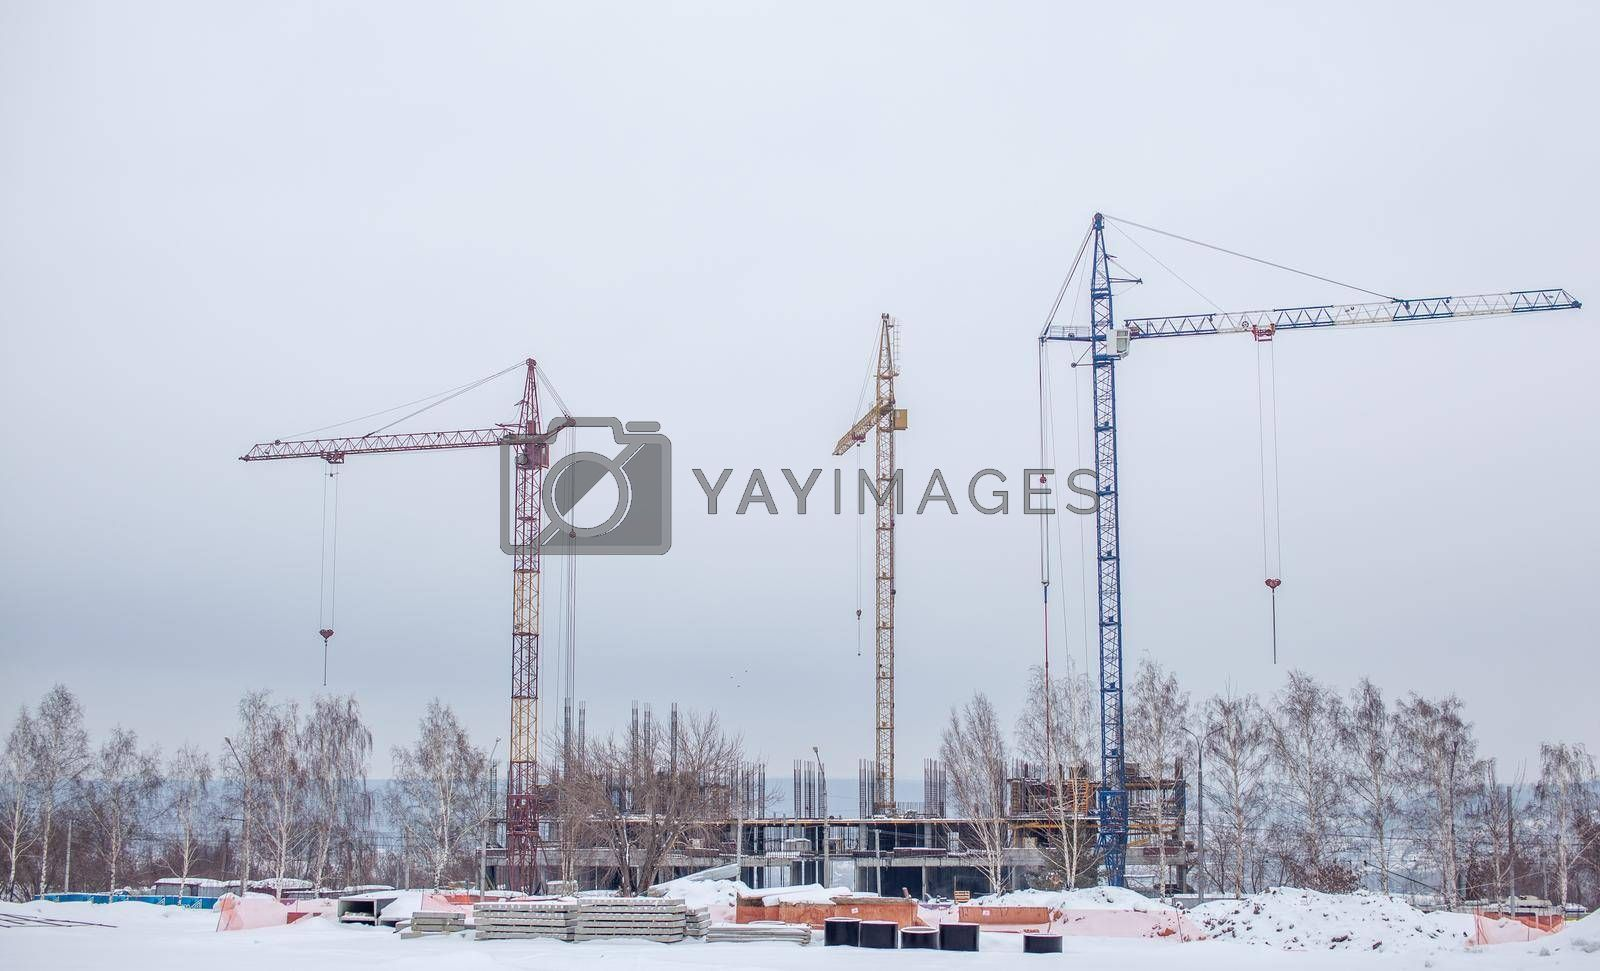 High-rise crane for construction on the sky background. Construction site with high-rise cranes. Sale of a tower crane during the economic crisis.